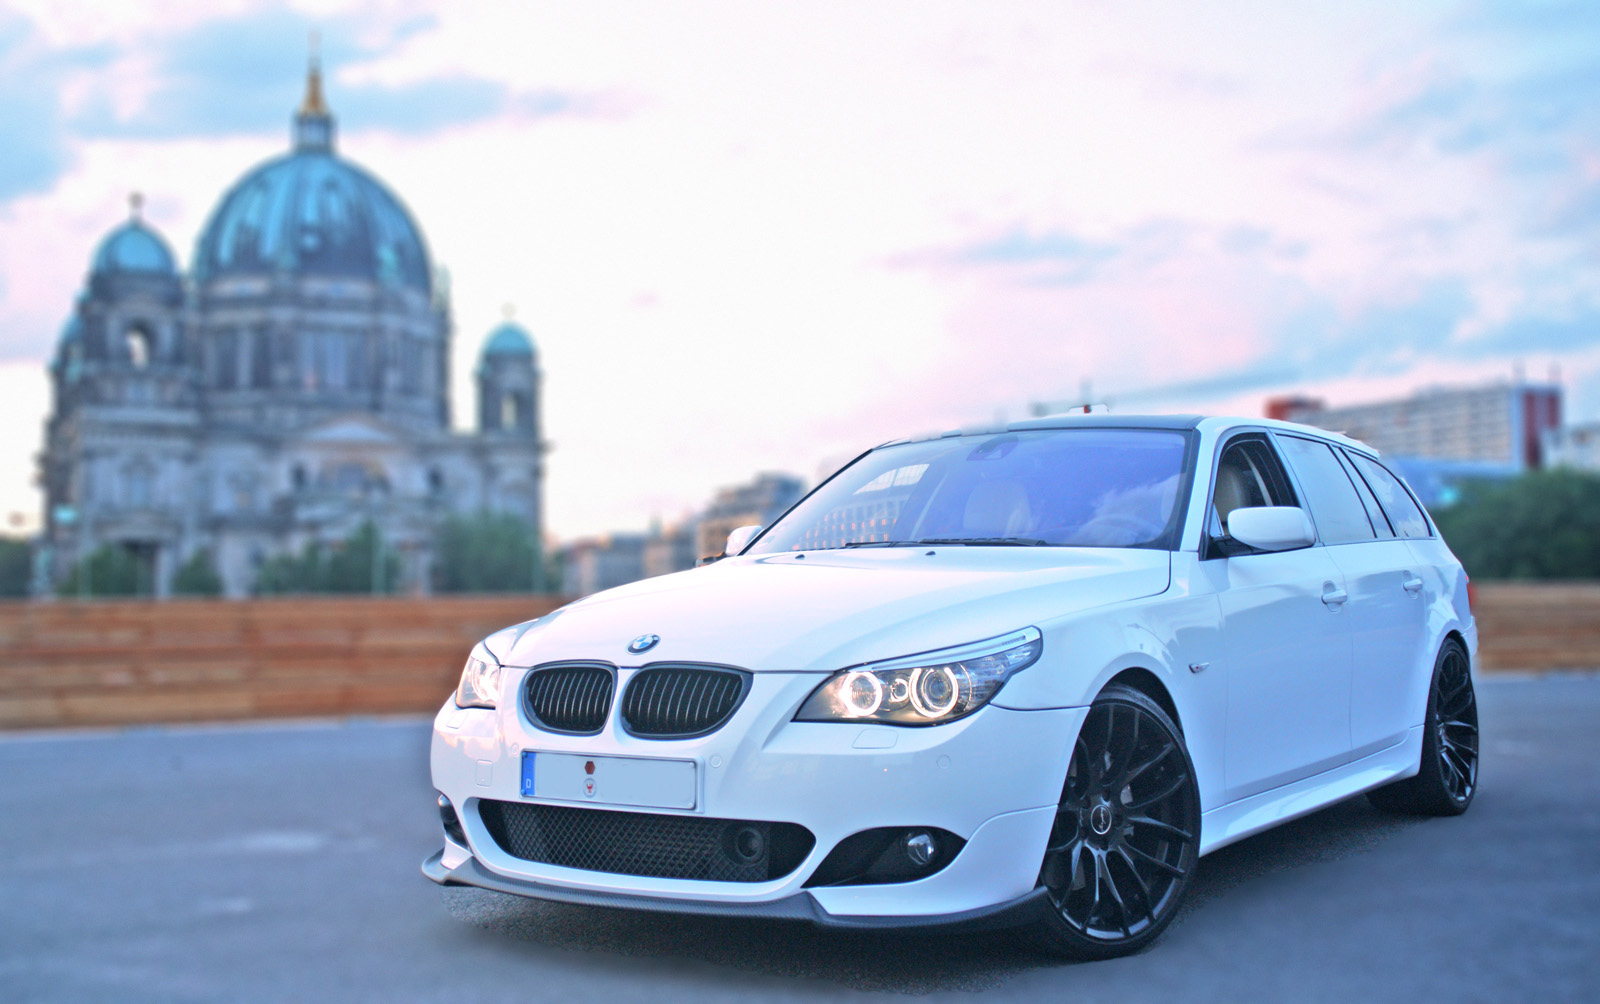 2008 BMW 535d E61 Hartge Ecu-Remap Tune